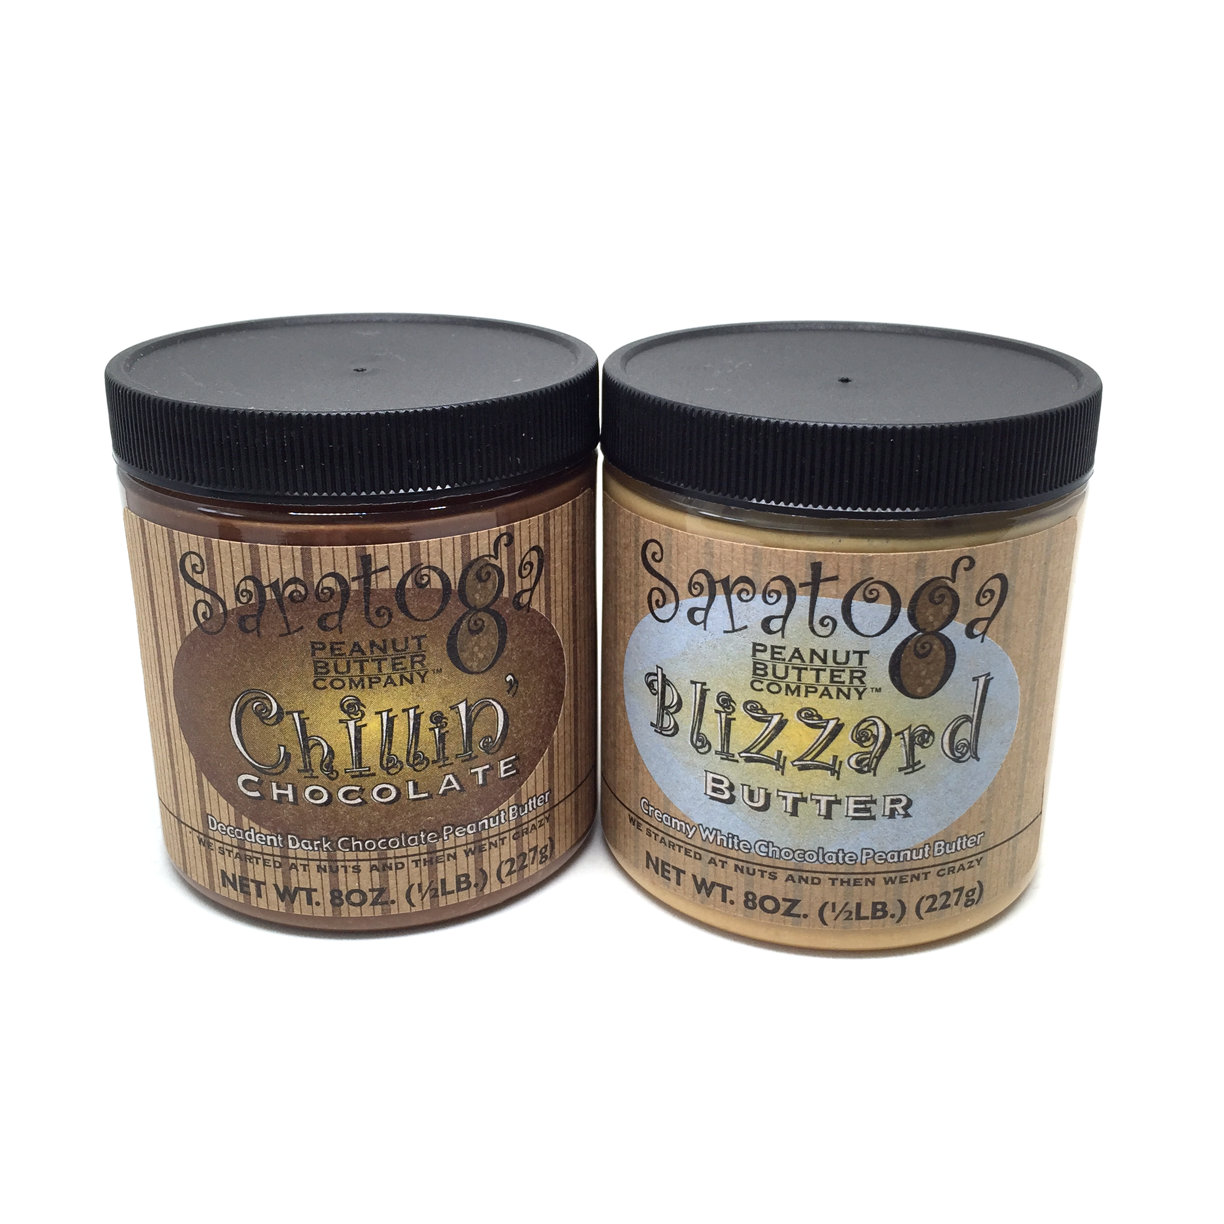 From the nuts at Saratoga Peanut Butter! Chillin' Chocolate, or Blizzard Butter, whether your in the mood for the rich taste of dark chocolate, or the creamy smooth taste of white chocolate and vanilla, these are sure to please!  Gluten Free, Non-GMO, No Added Oils, No Added Sugars, No Preservatives, No Additives, Vegan